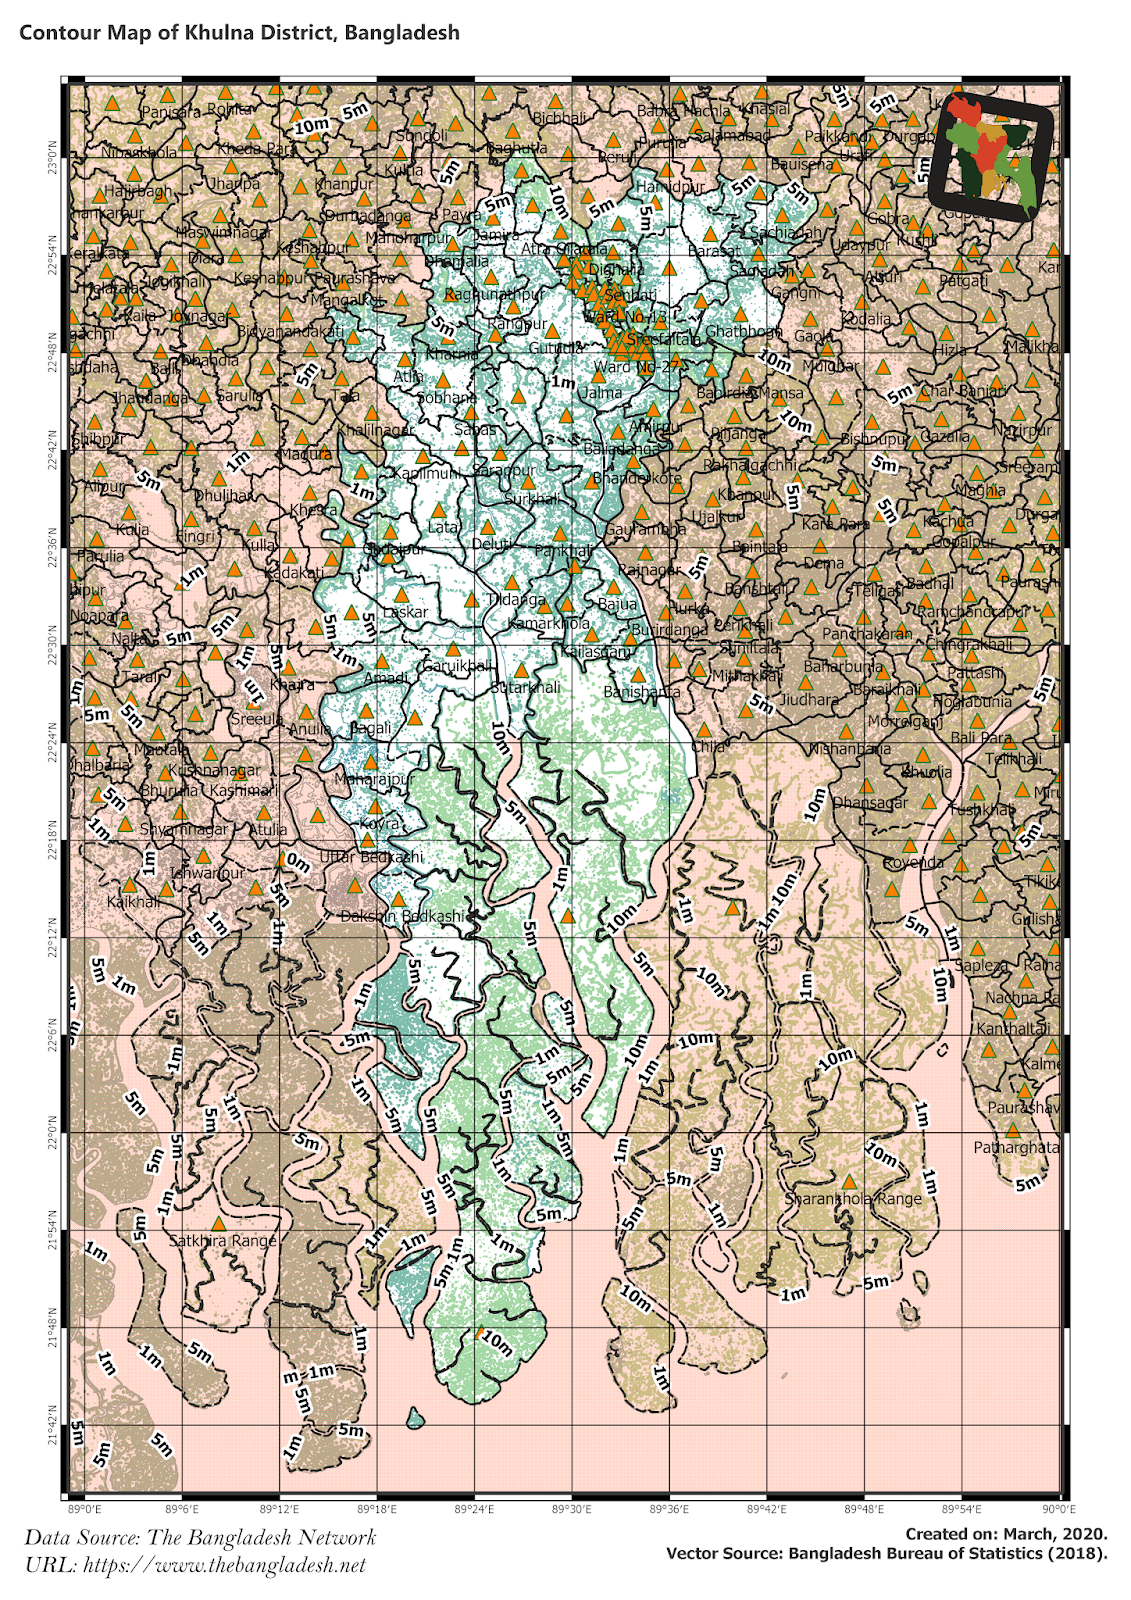 Elevation Map of Khulna District of Bangladesh